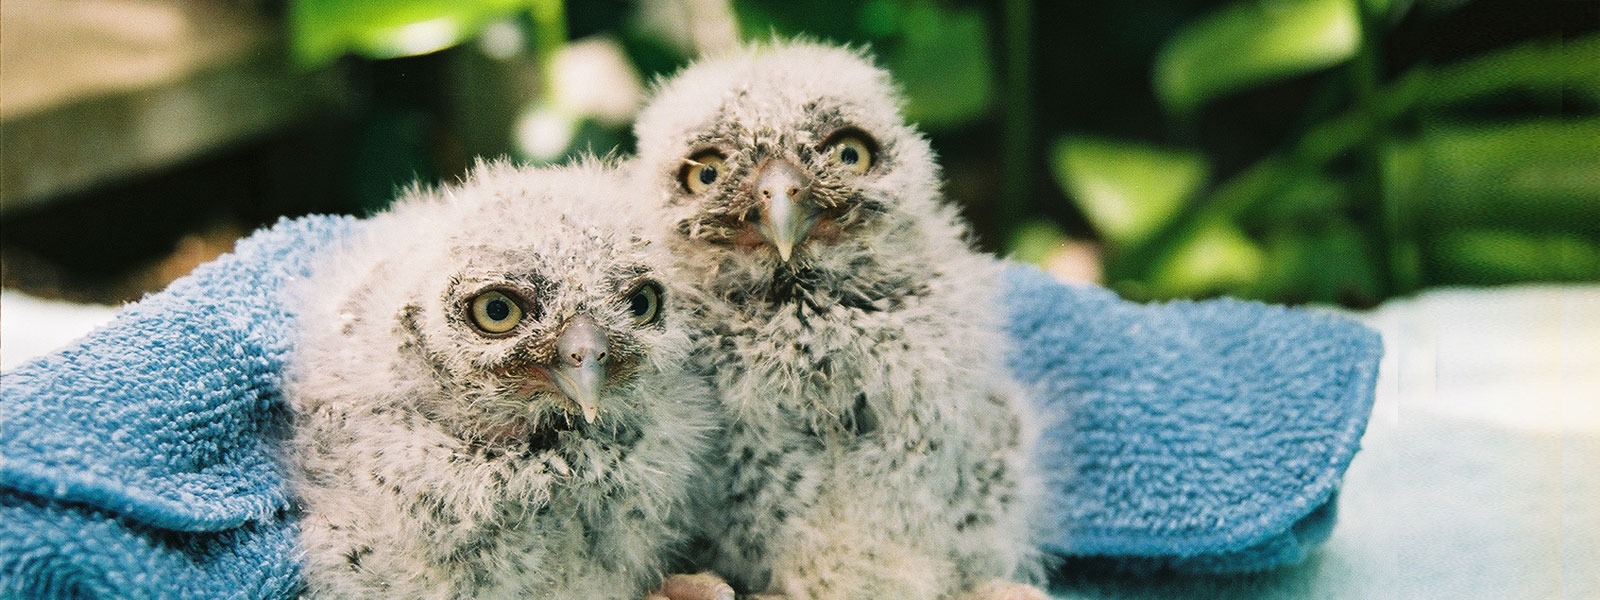 Baby Screech Owls at WildCare. Photo by Melanie Piazza